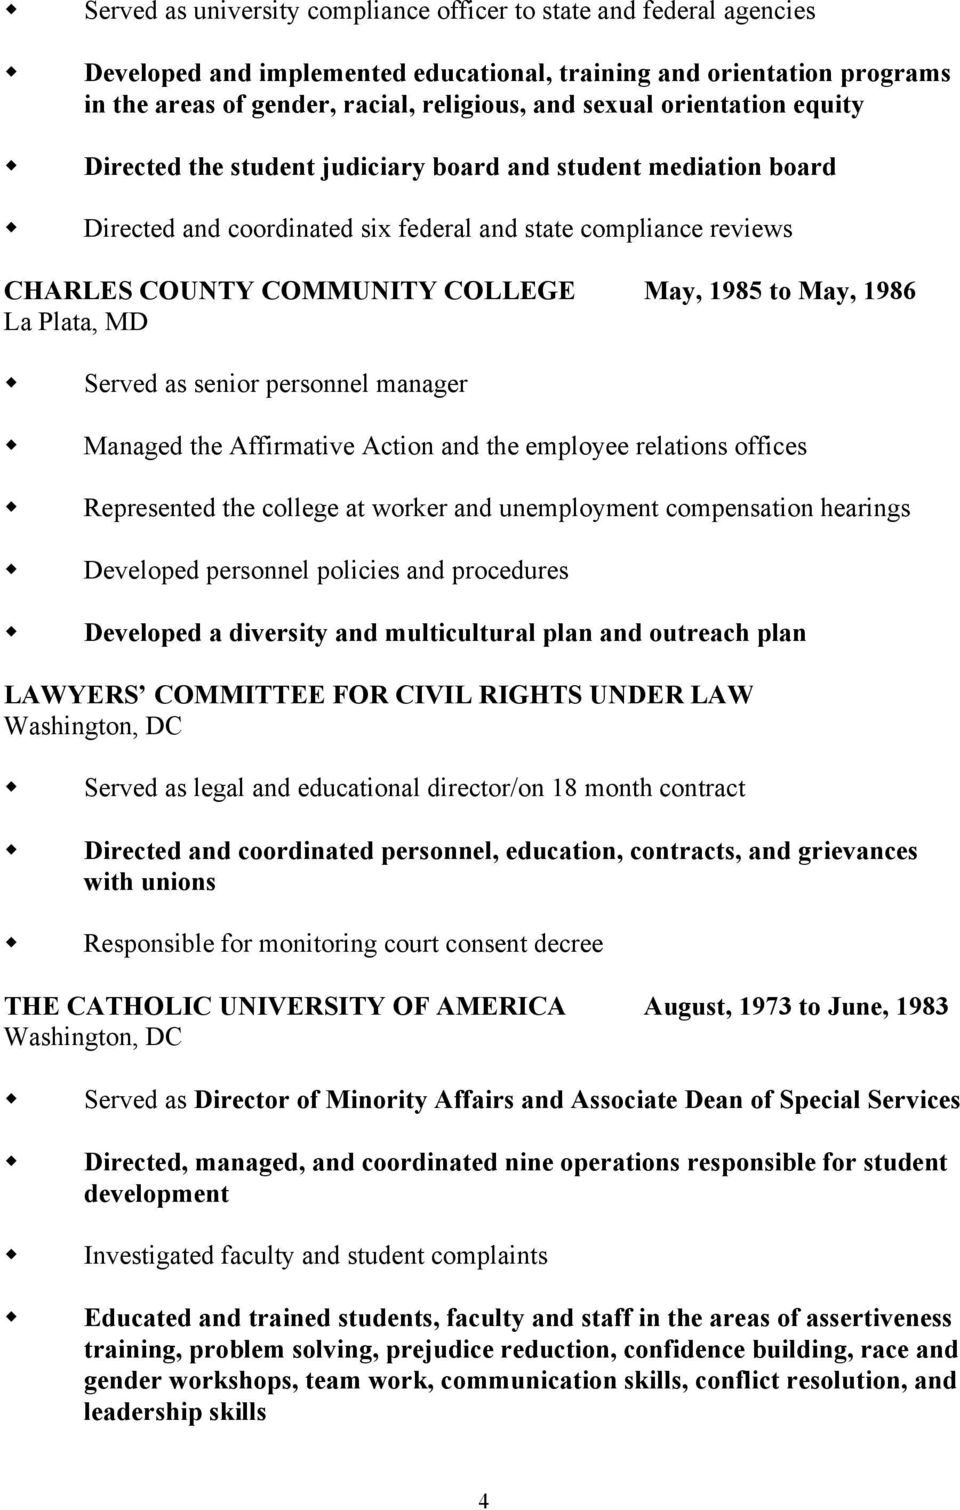 May, 1986 La Plata, MD Served as senior personnel manager Managed the Affirmative Action and the employee relations offices Represented the college at worker and unemployment compensation hearings